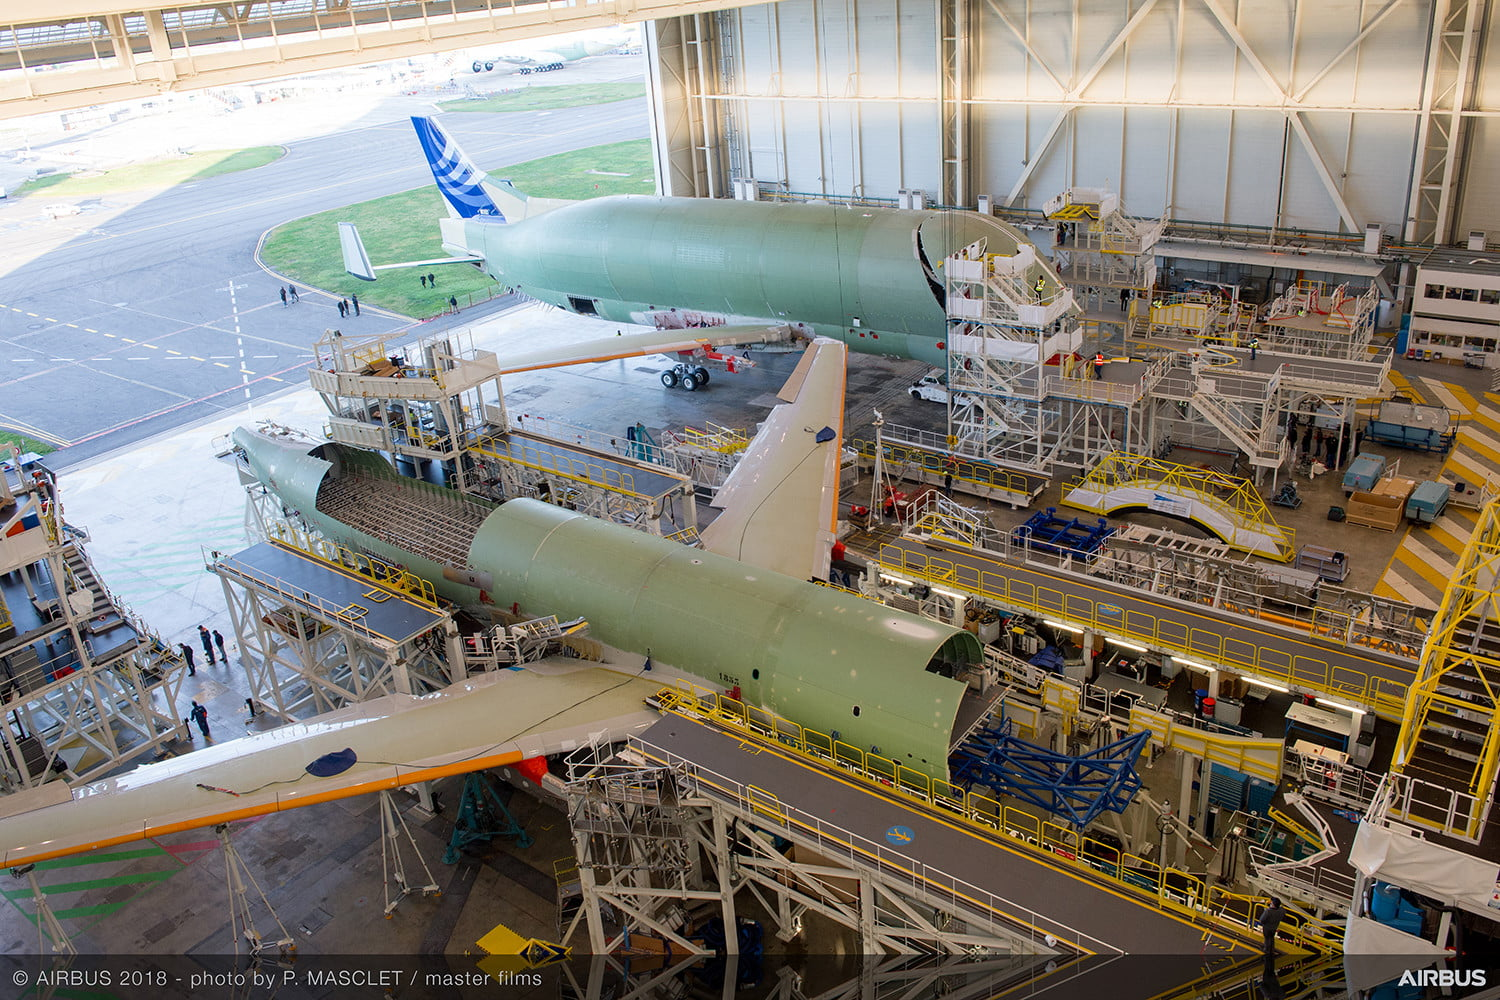 airbus making progress with belugaxl belugxl 1